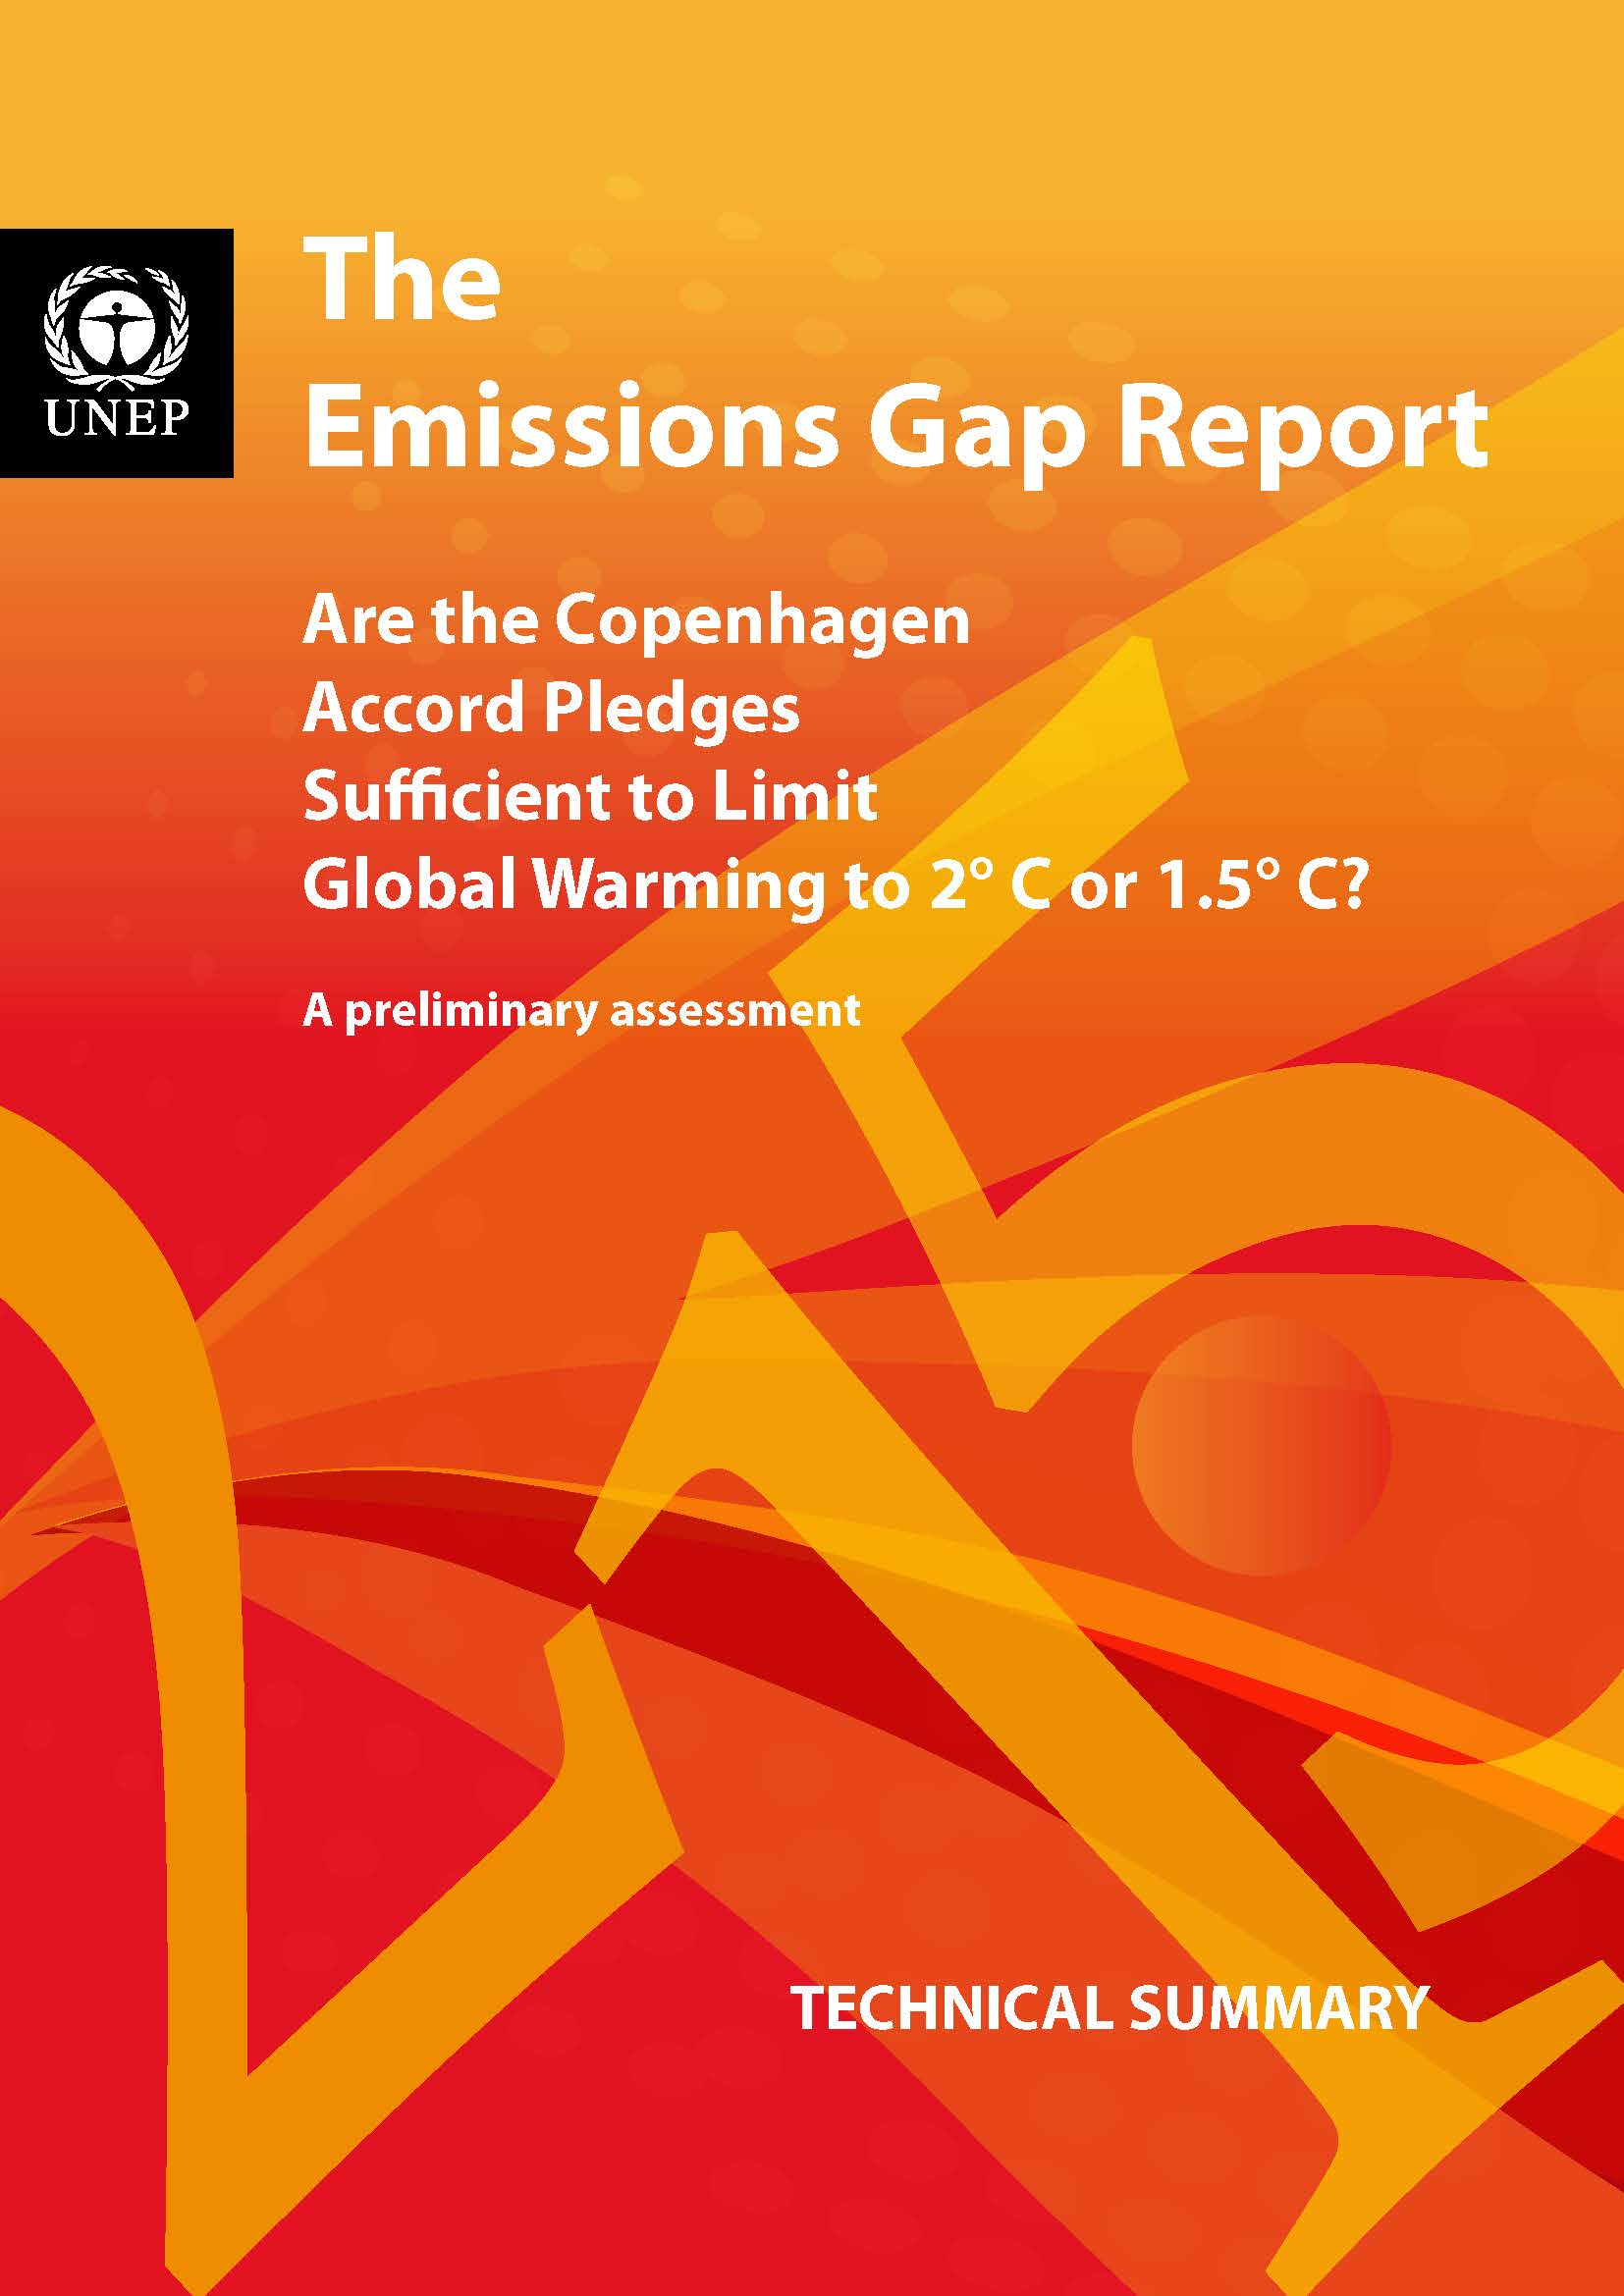 Capa da The Emissions Gap Report